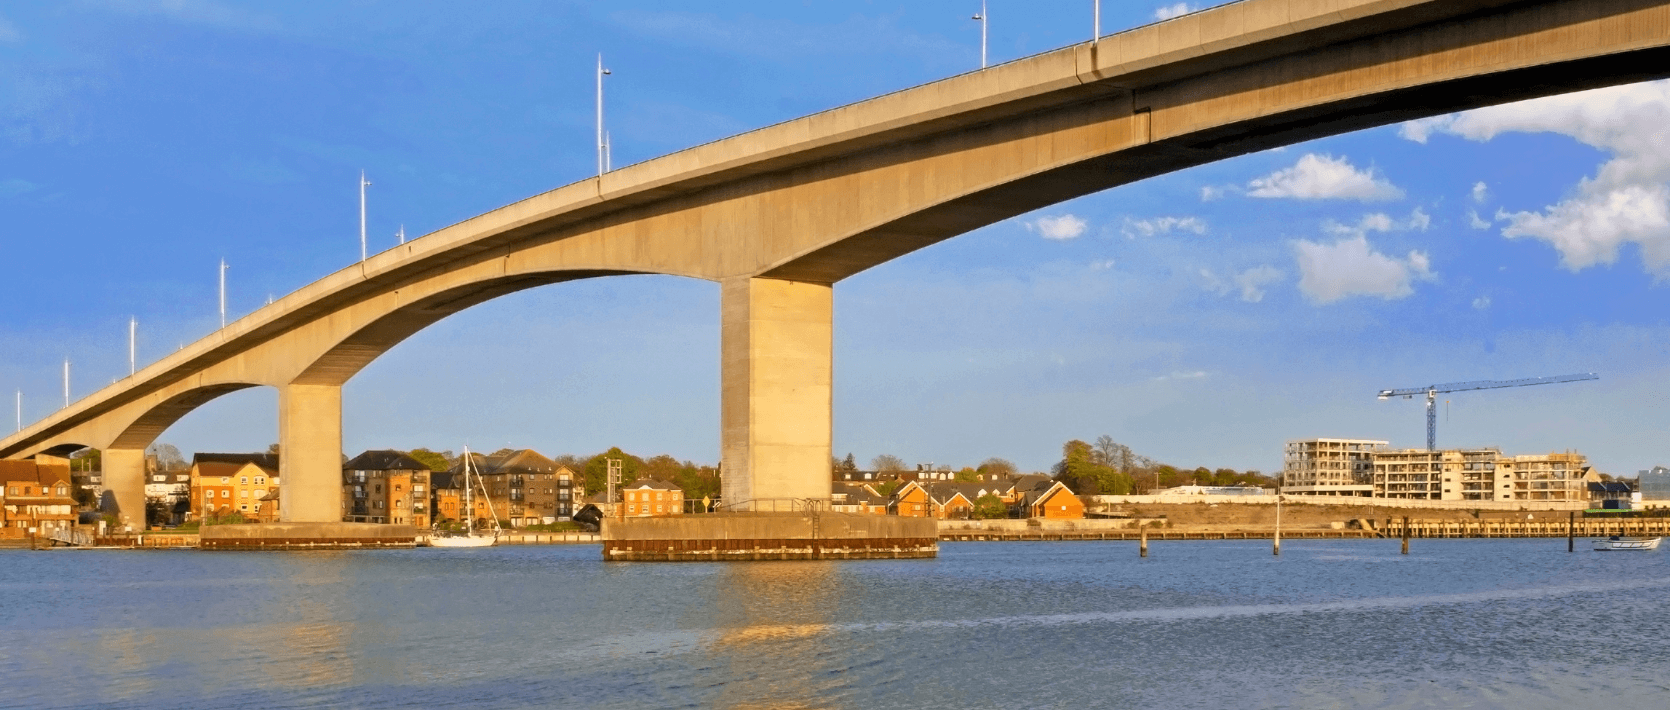 A new vision for Southampton